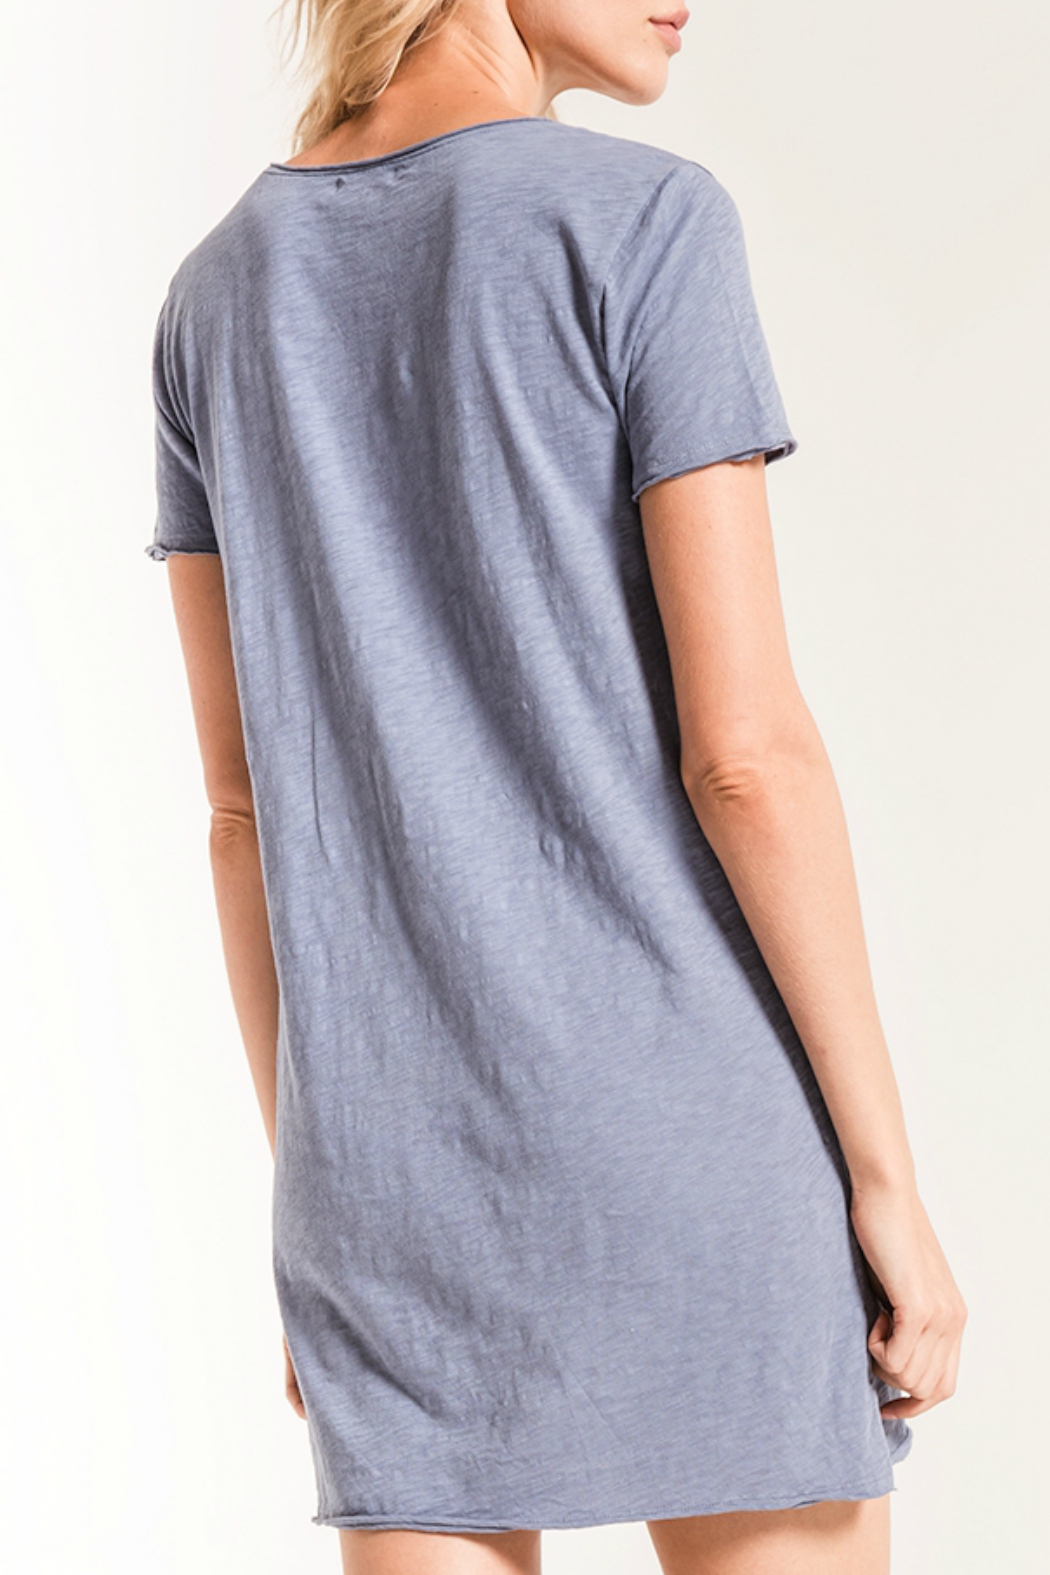 z supply Paige T Shirt Dress - Side Cropped Image